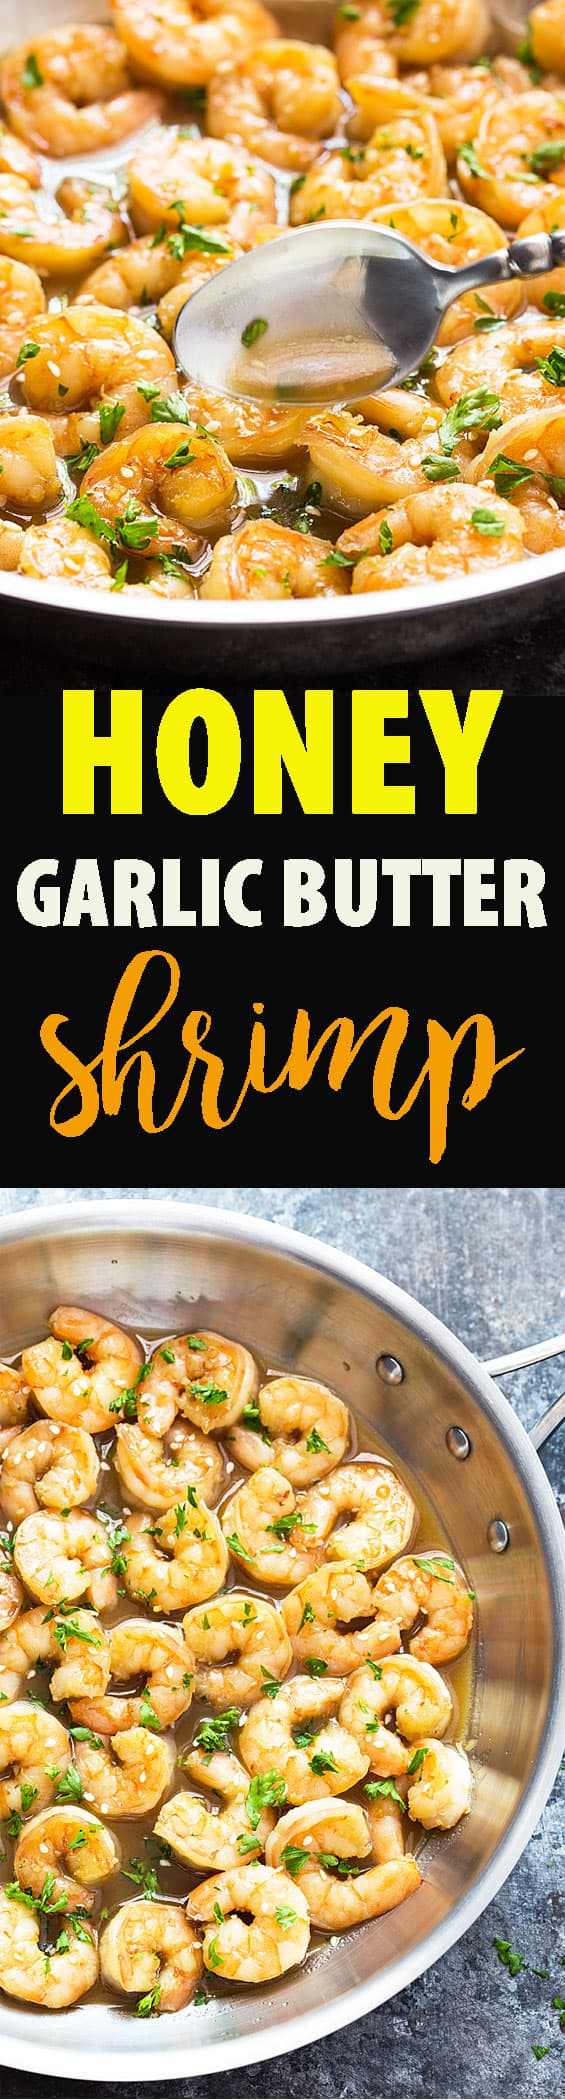 A two image vertical collage of honey garlic butter shrimp with overlay text in the center.